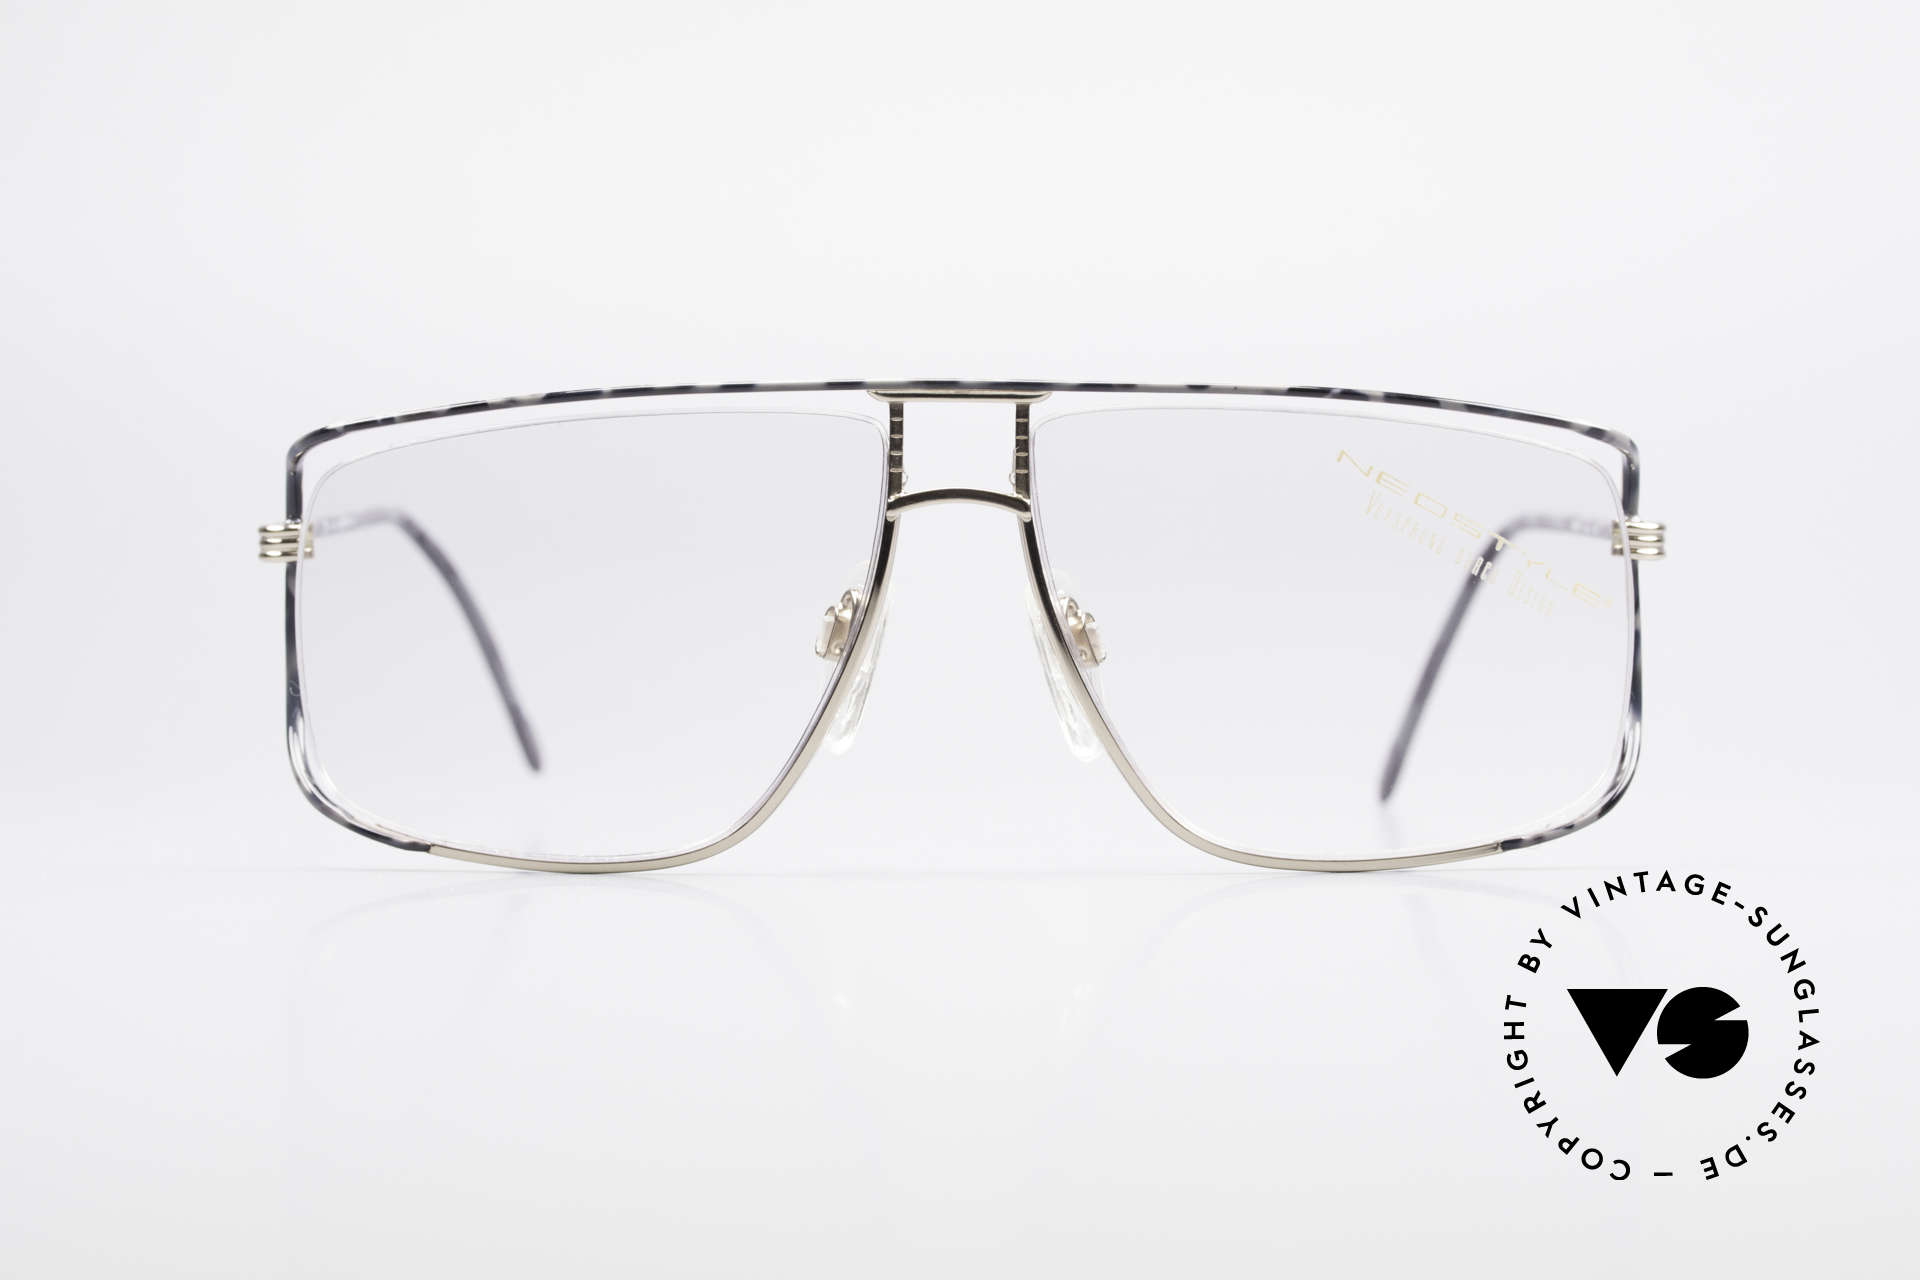 Neostyle Jet 30 Small True Vintage No Retro Frame, best craftsmanship and materials grant finest quality, Made for Men and Women